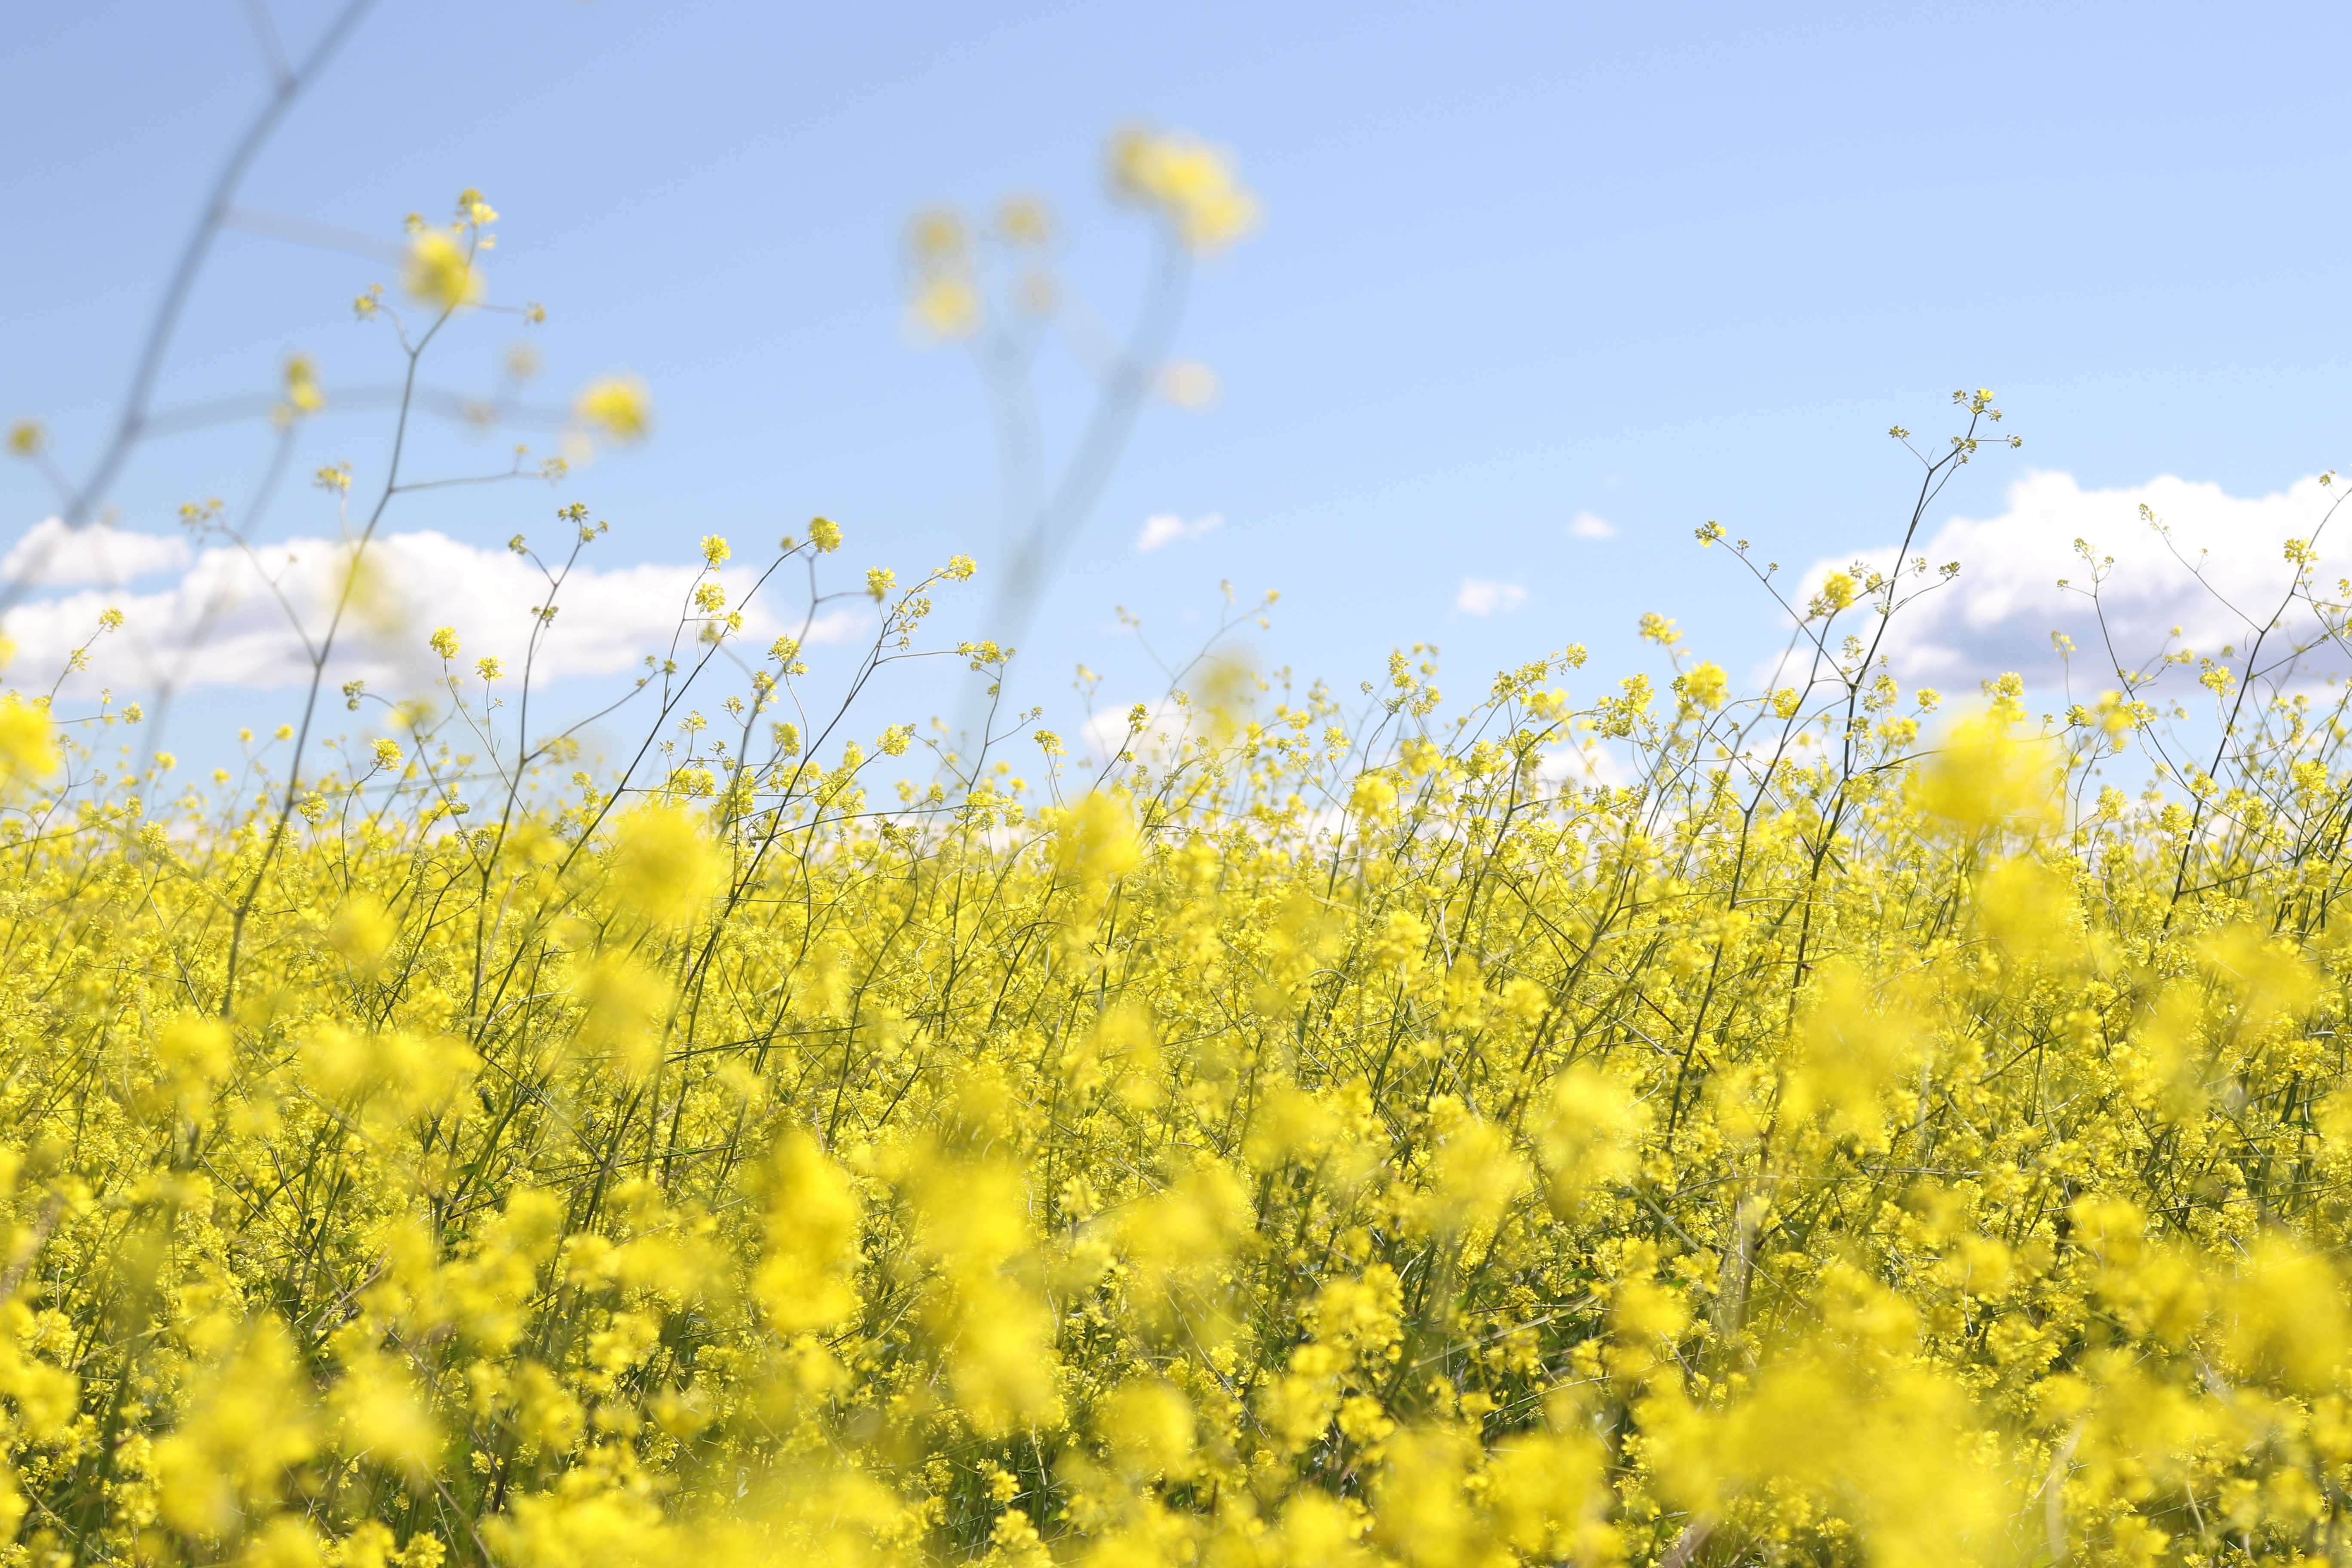 A field of blooming rapeseed under a blue sky